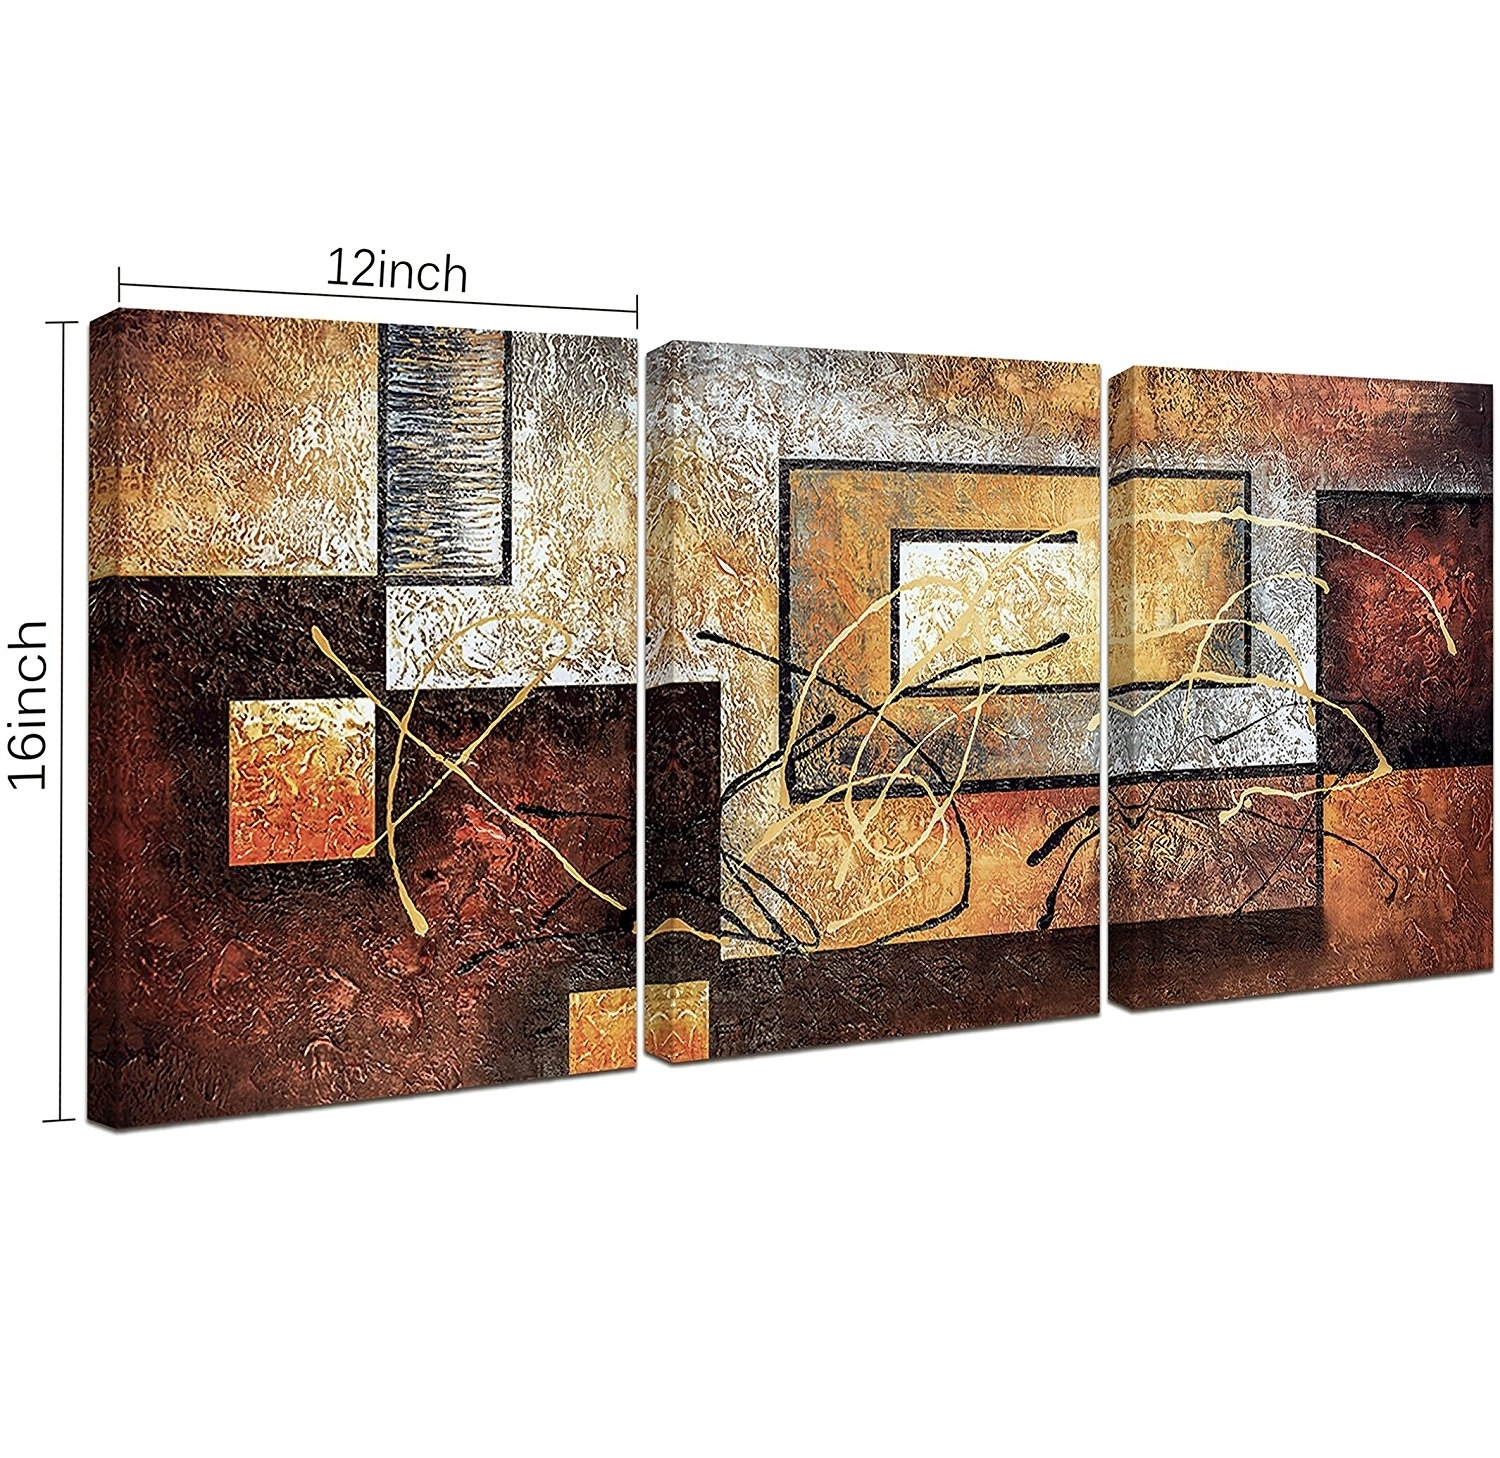 Kitchen : Wall Art Ideas For Large Wall Prints For Kitchen Walls within Most Current Kitchen Canvas Wall Art